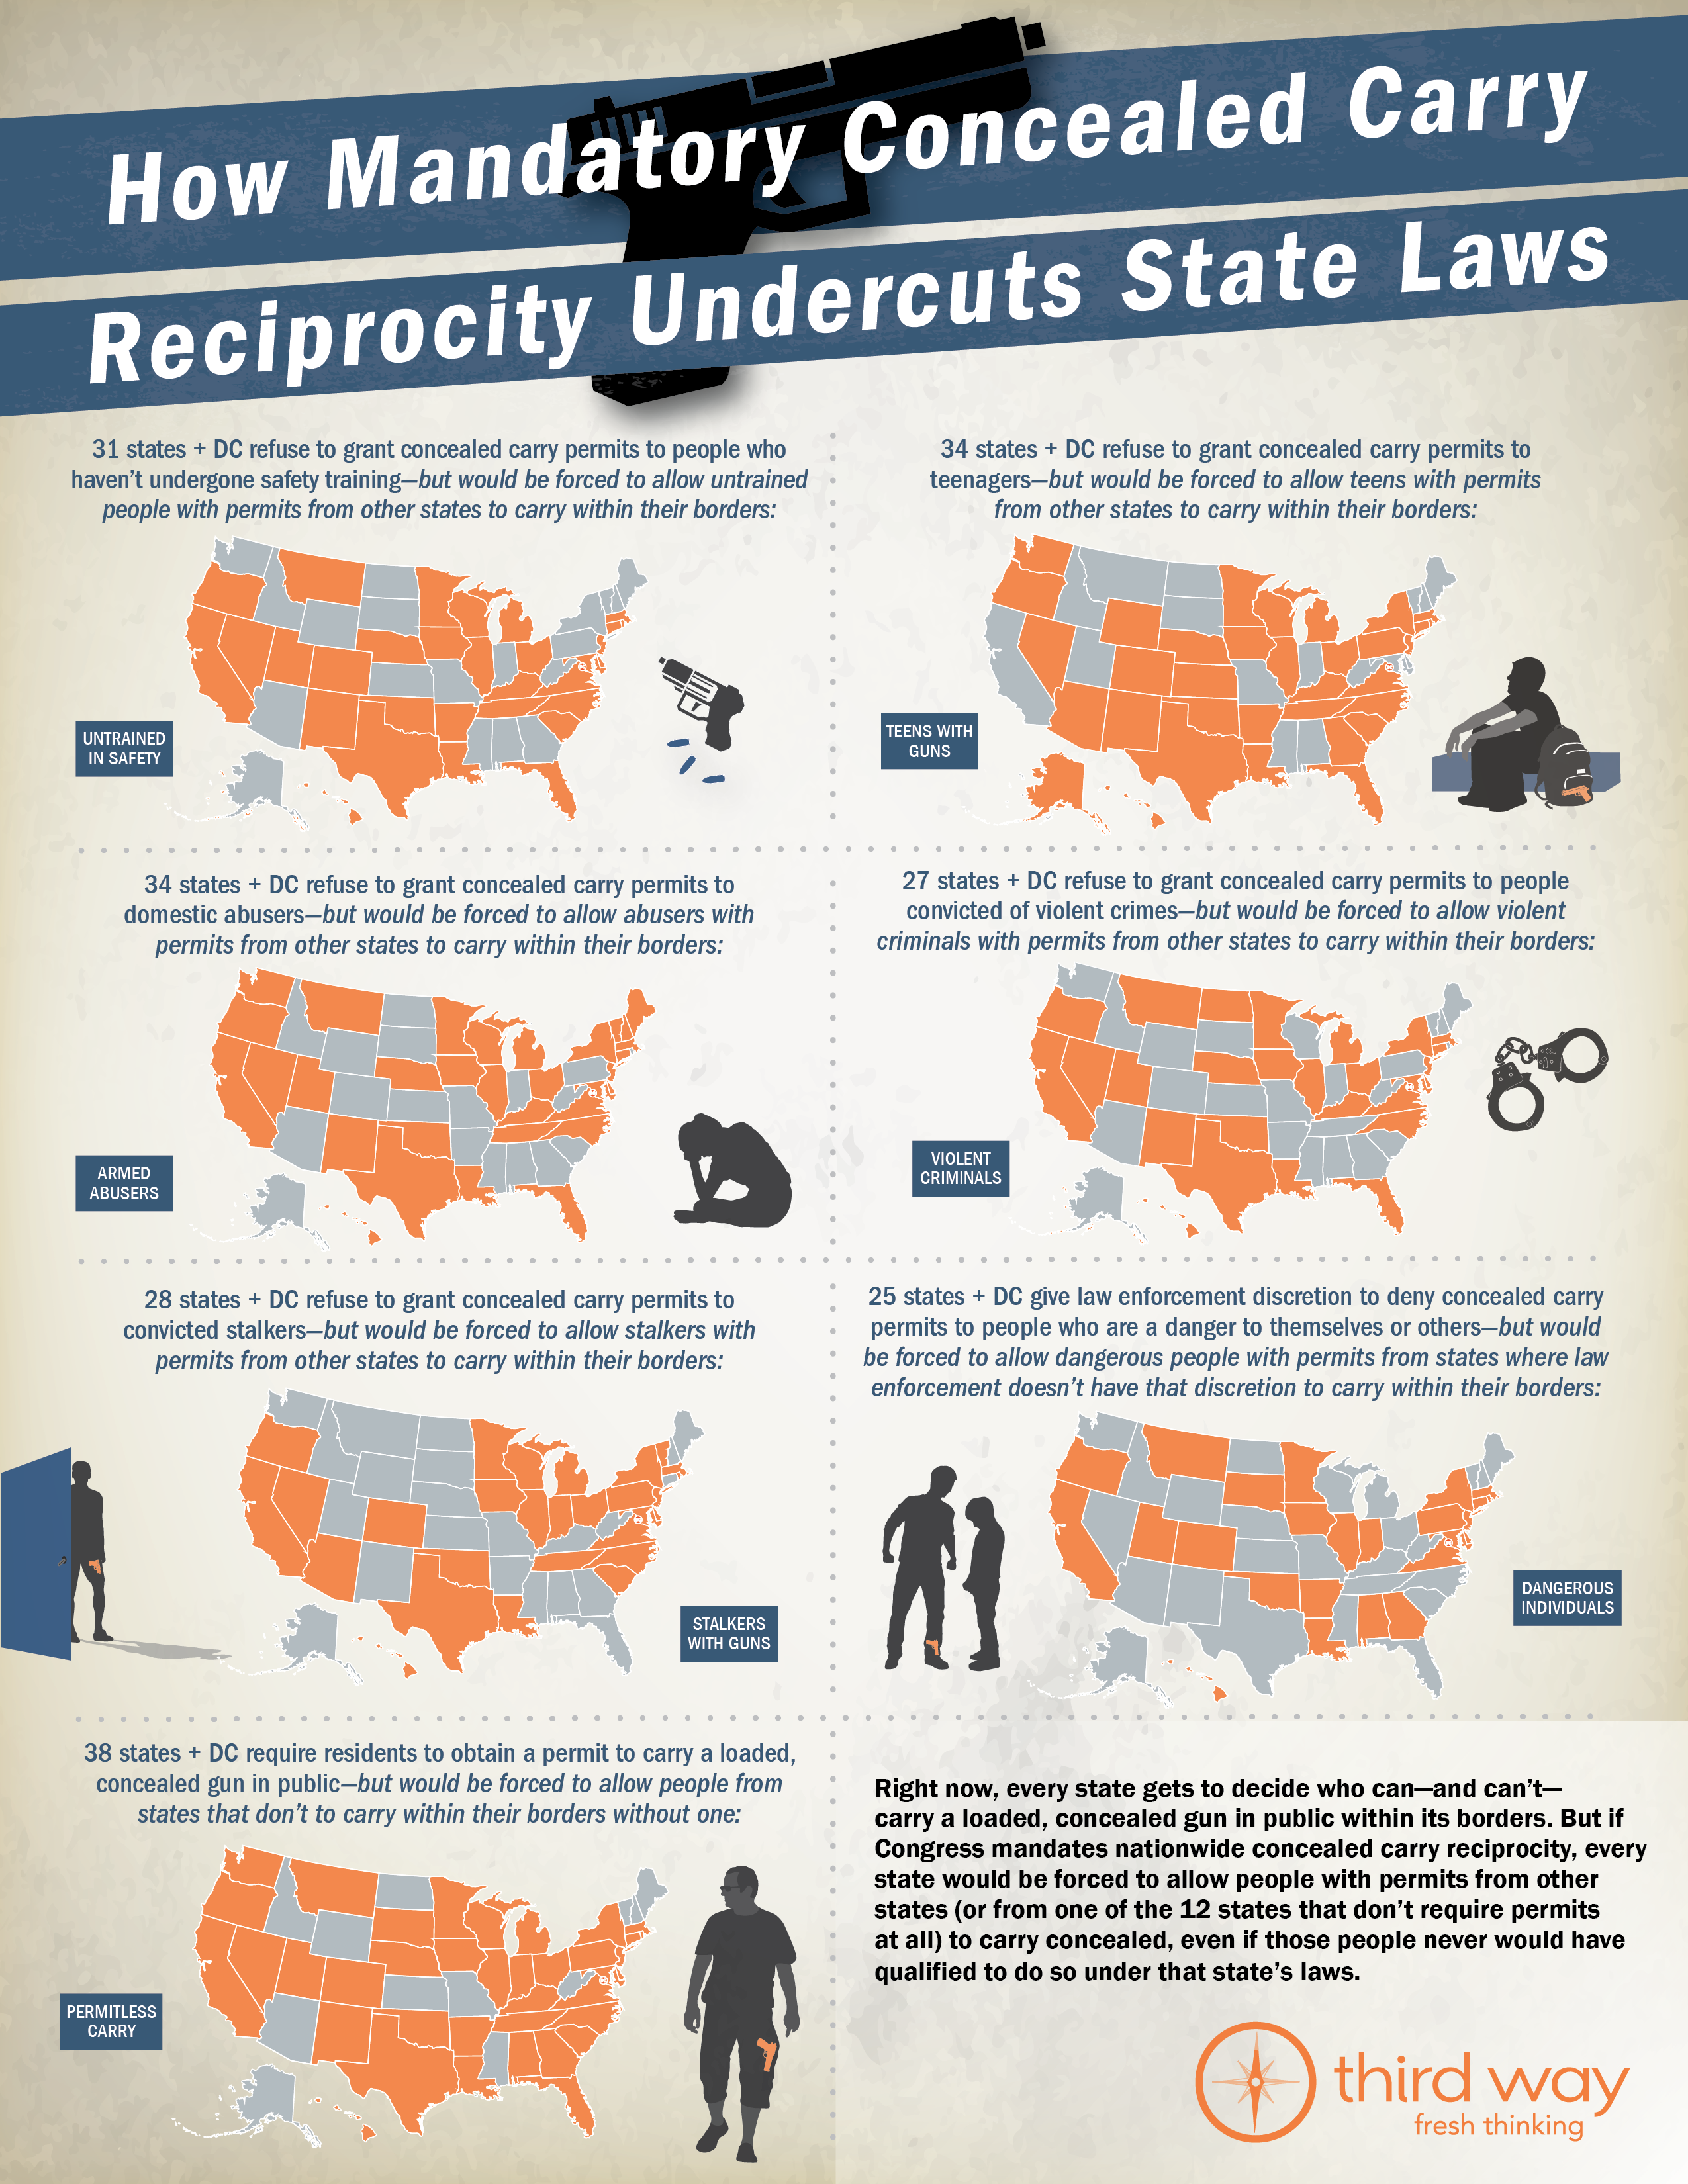 How Mandatory Concealed Carry Reciprocity Undercuts State Laws